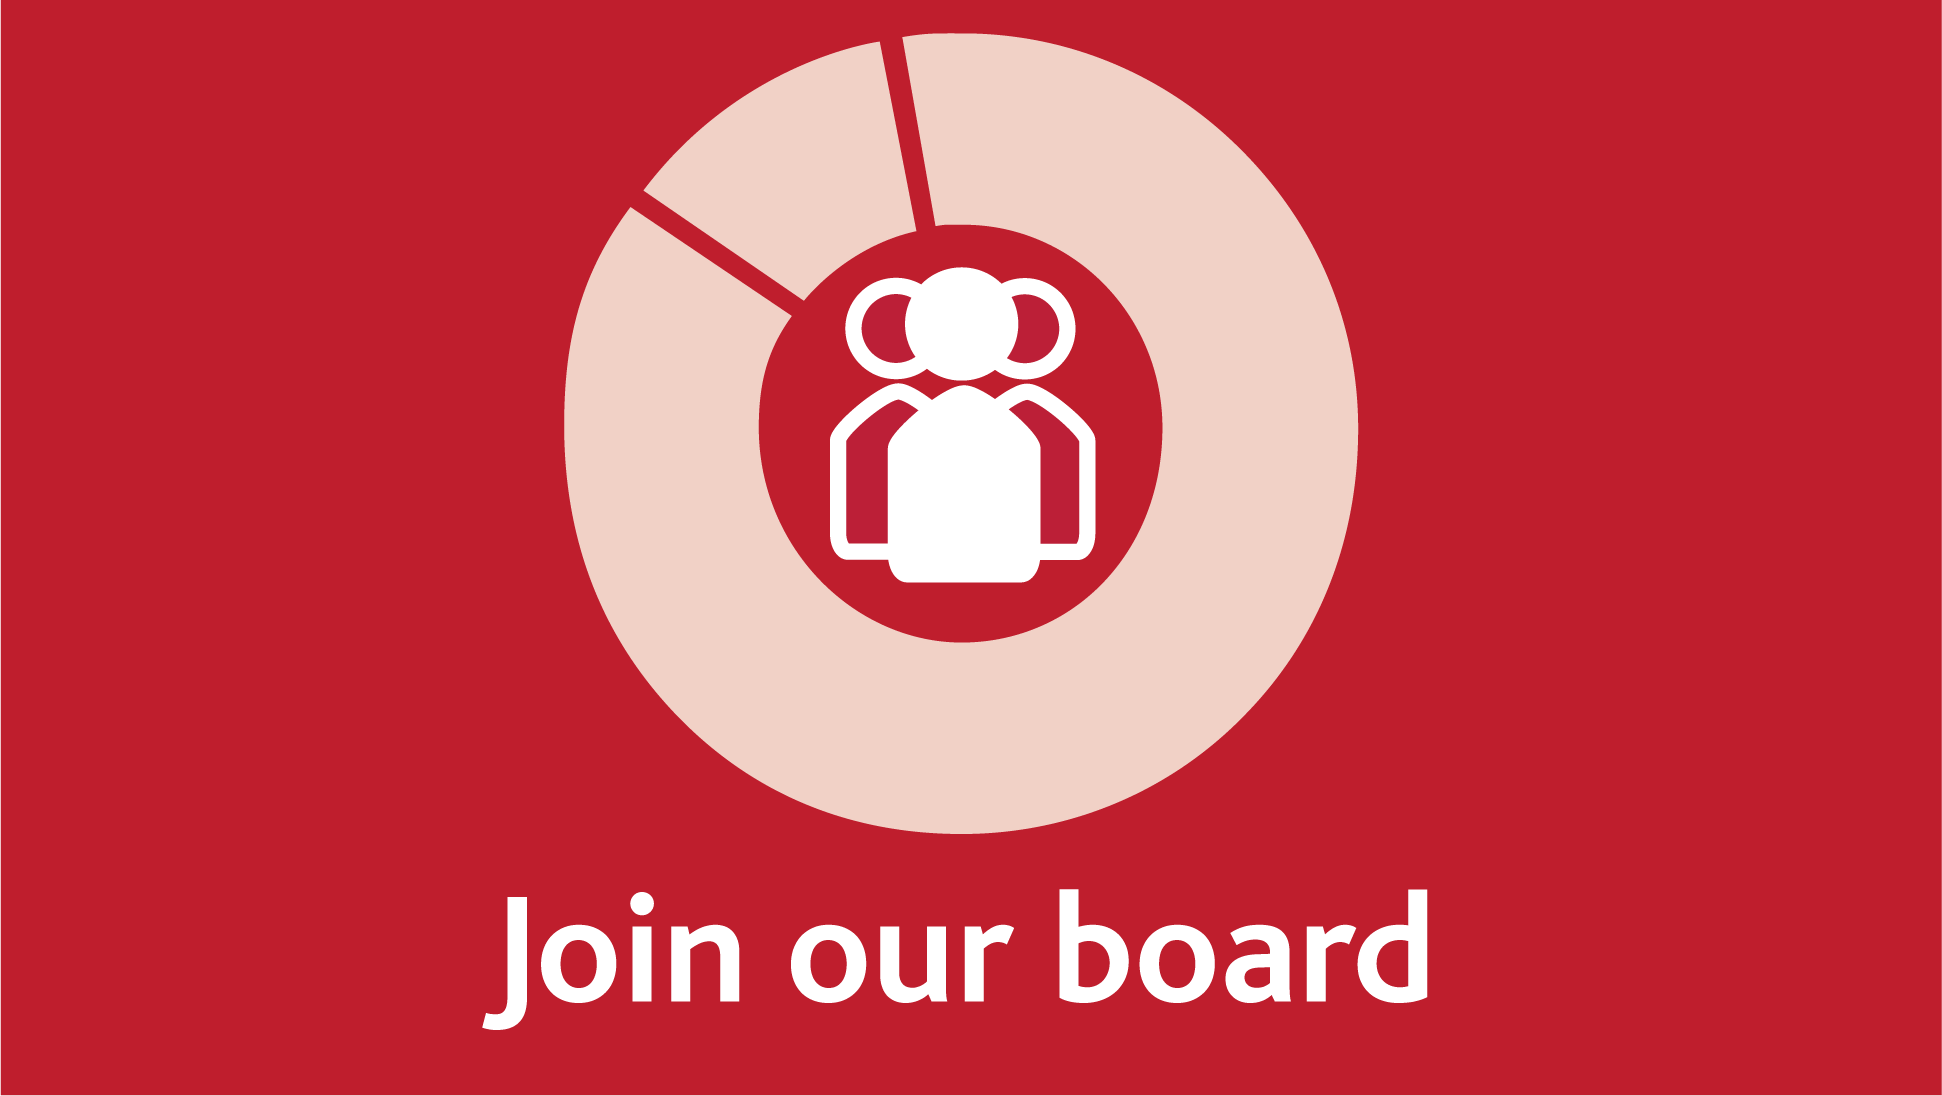 join-our-board_featured-image